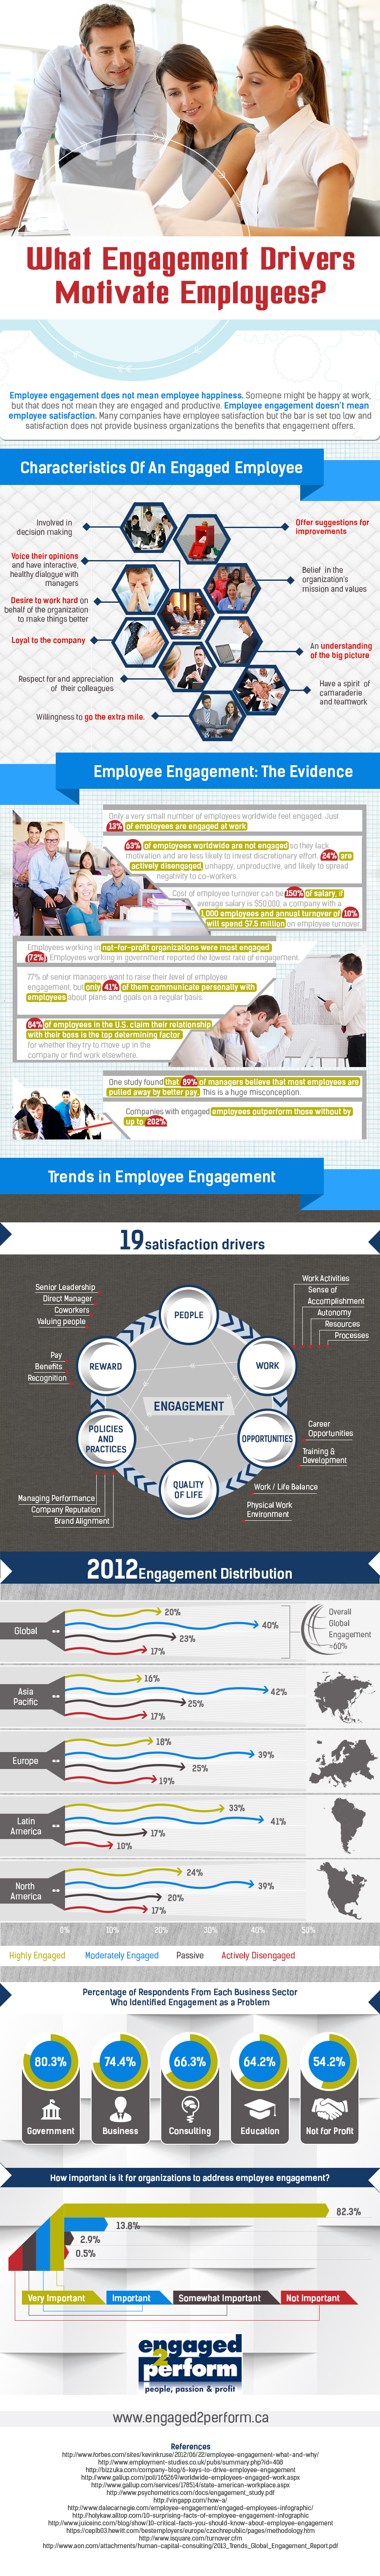 Engagement Drivers That Motivate Employees [Infographic]